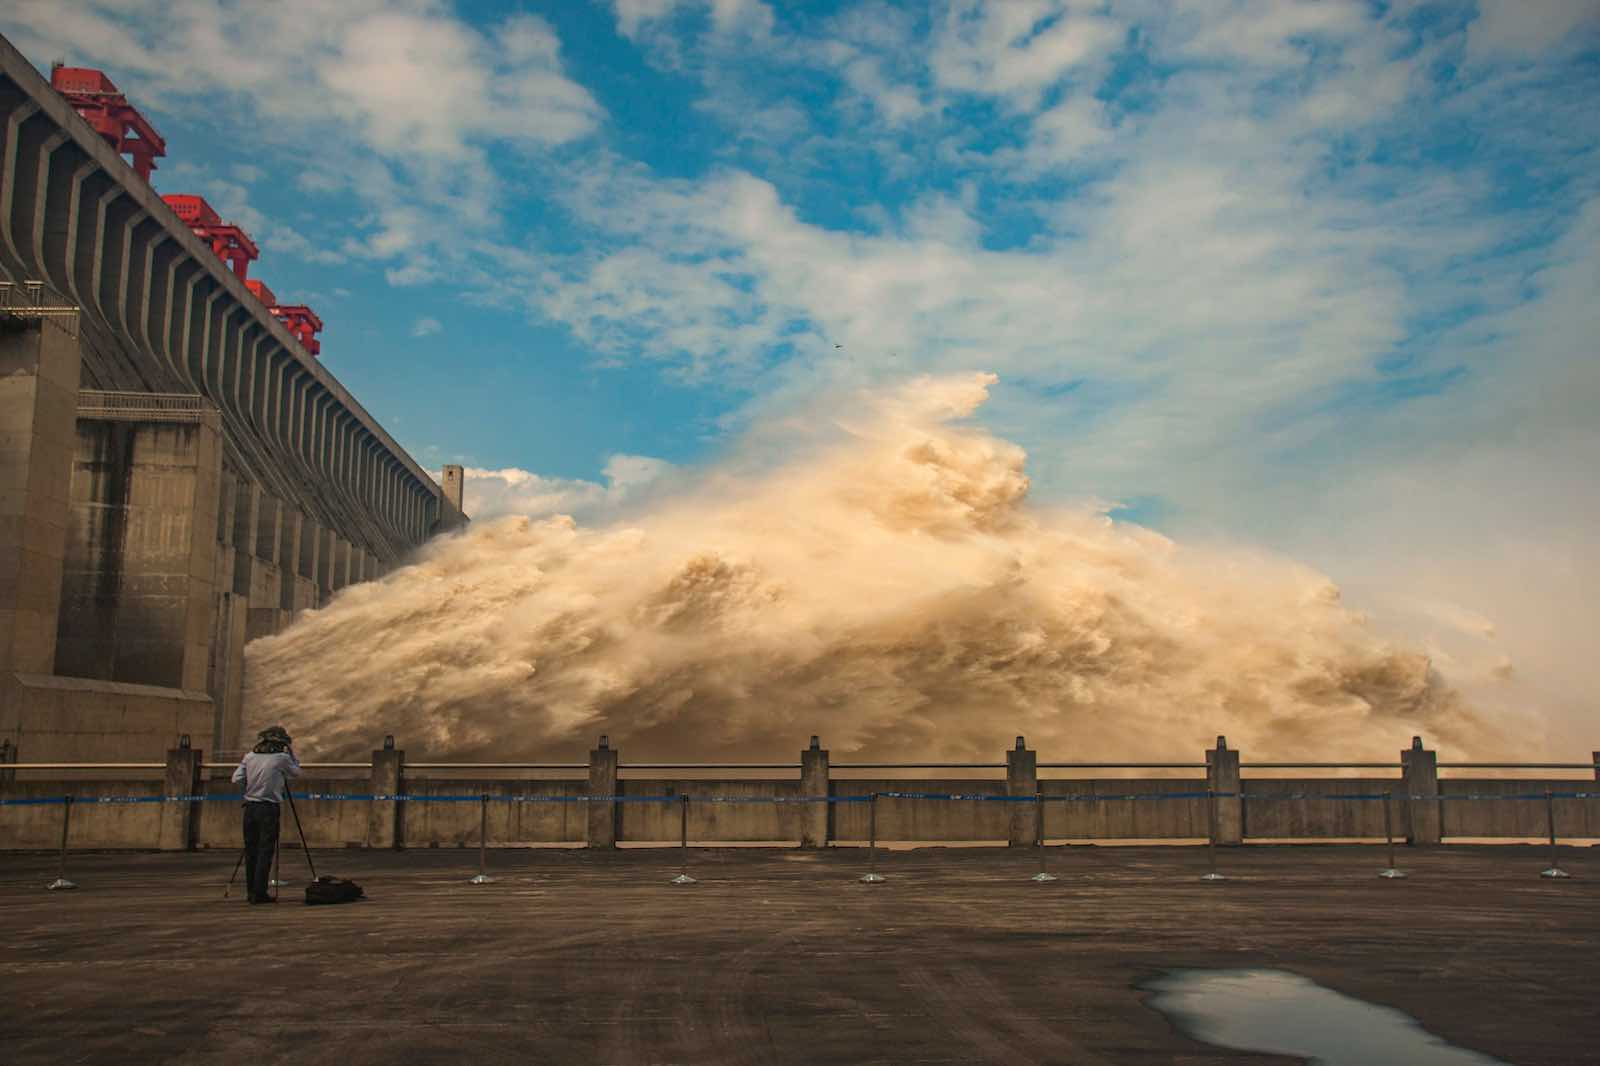 Flood water is released on 19 July from the Three Gorges Dam, the gigantic hydropower project on the Yangtze river (STR/AFP/Getty Images)